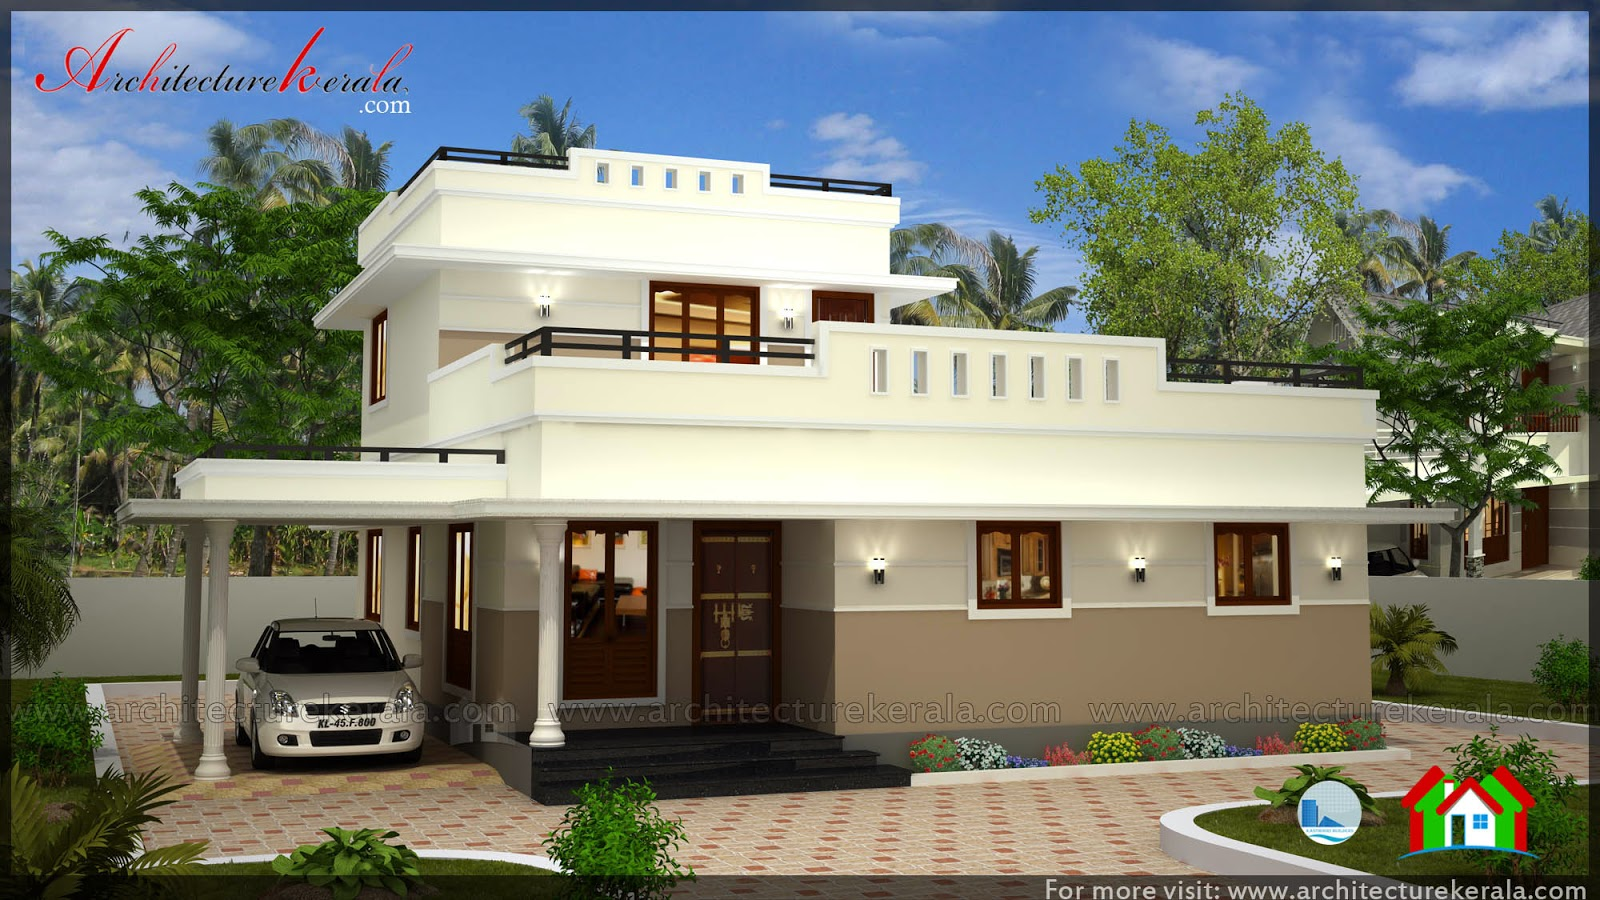 Low cost 3 bedroom kerala house plan with elevation free for Low building cost house plans